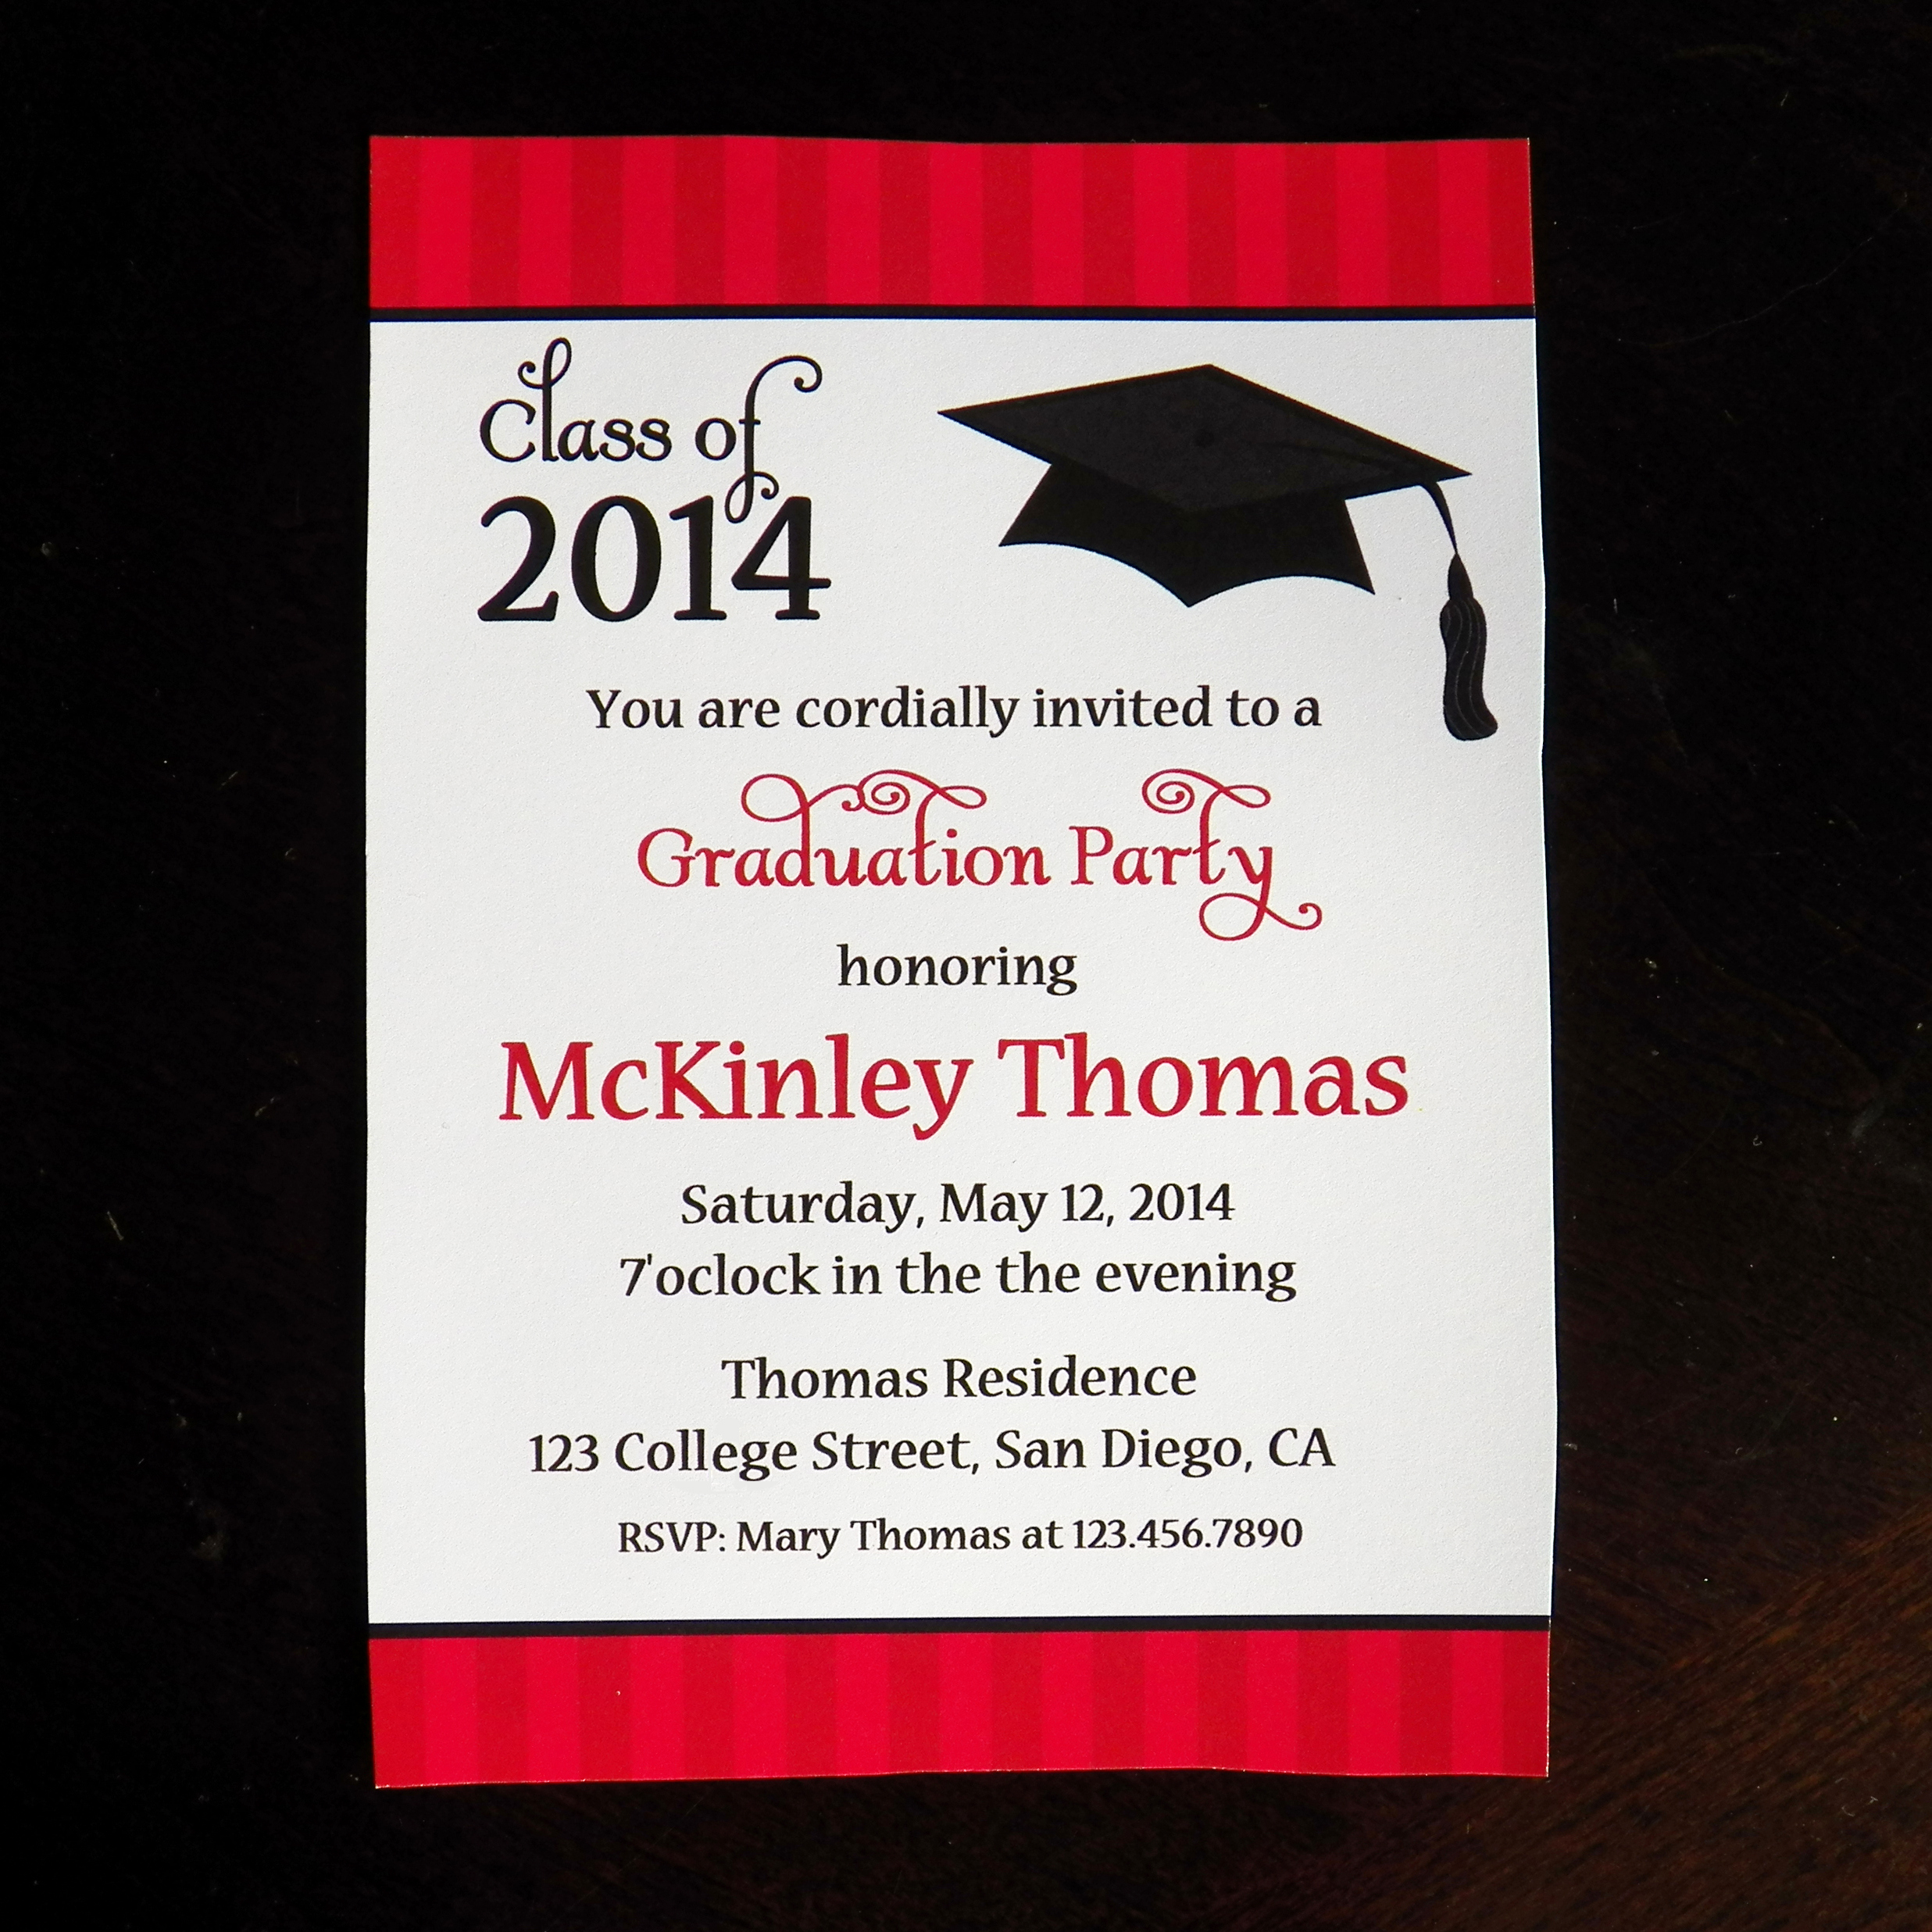 Graduation Party Invitation Wording Lovely Graduation Party Hats F to Mckinley that Party Chick